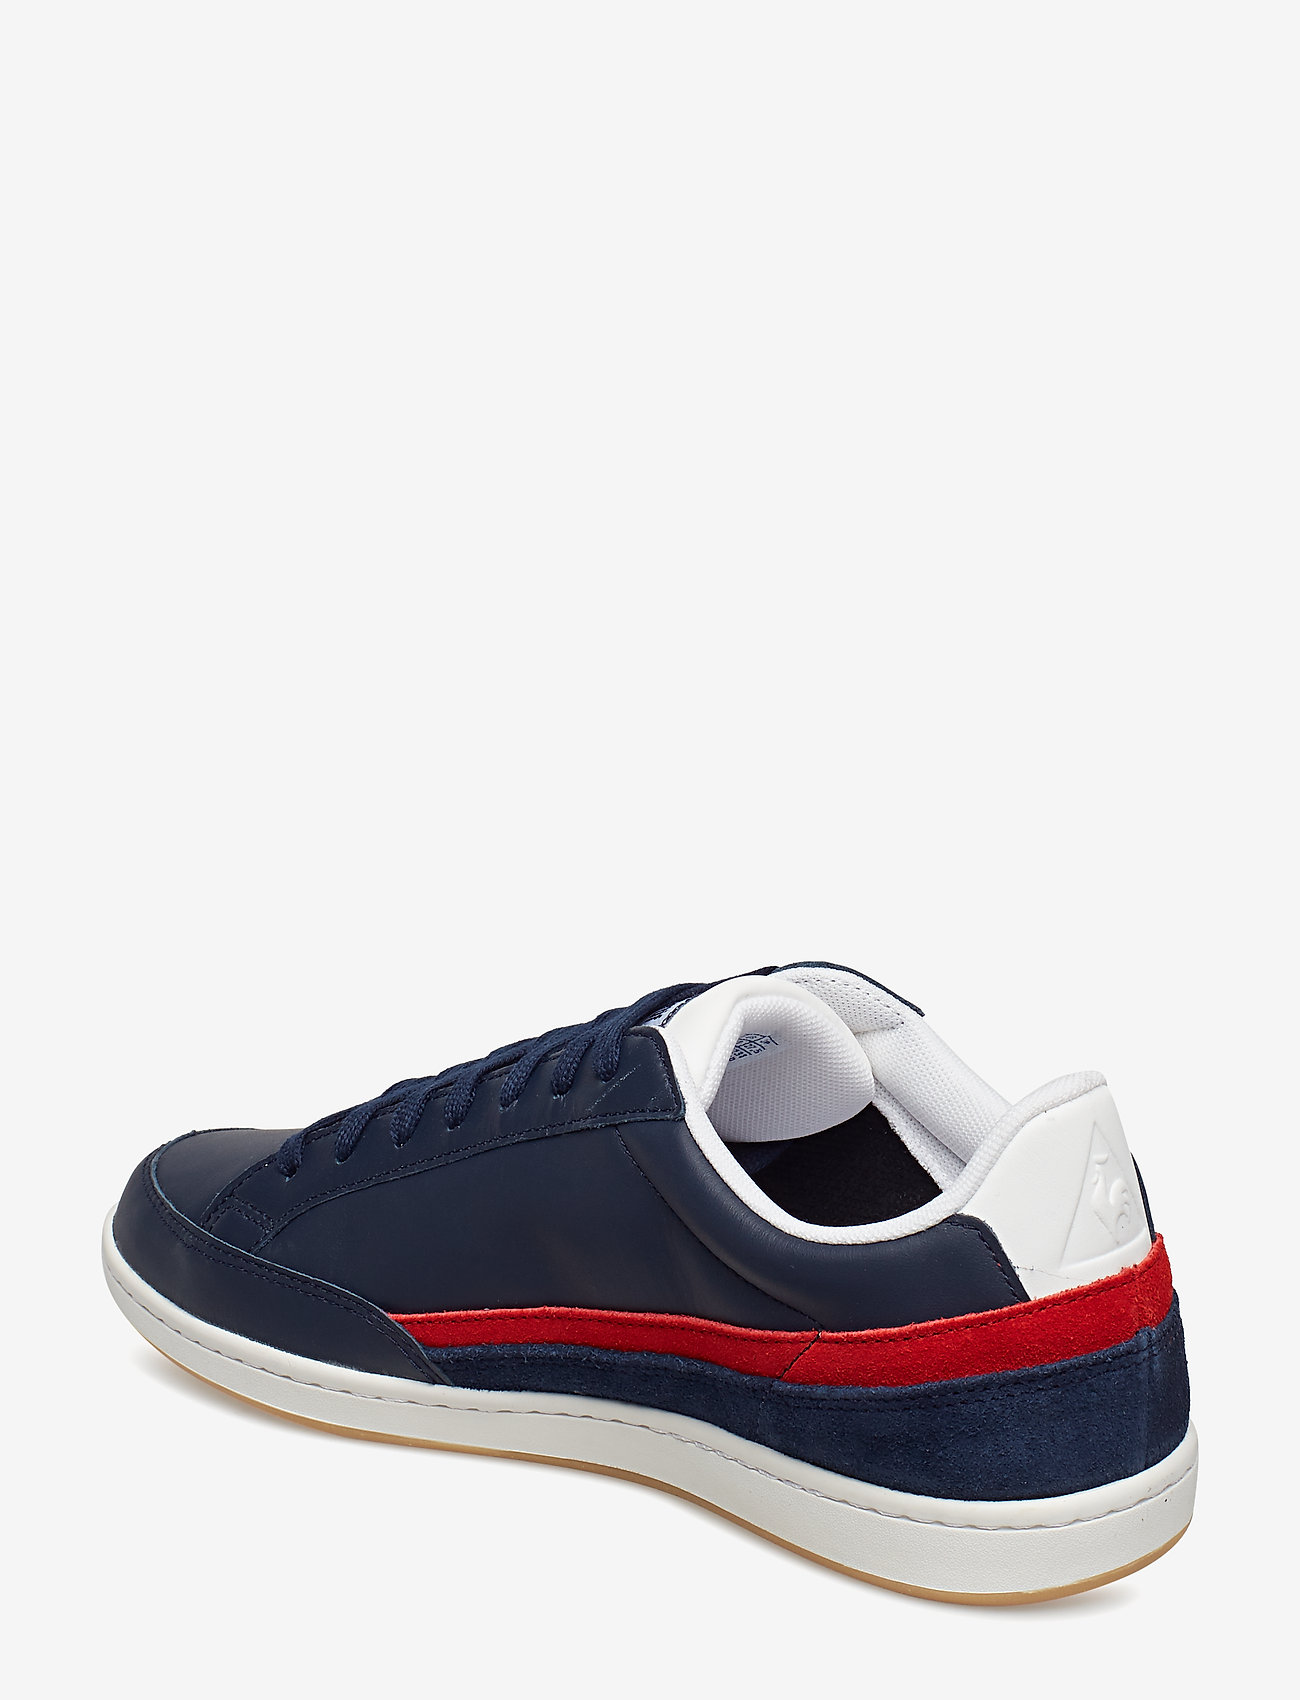 Courtclay Tricolore (Dress Blue/pure Red) - Le Coq Sportif